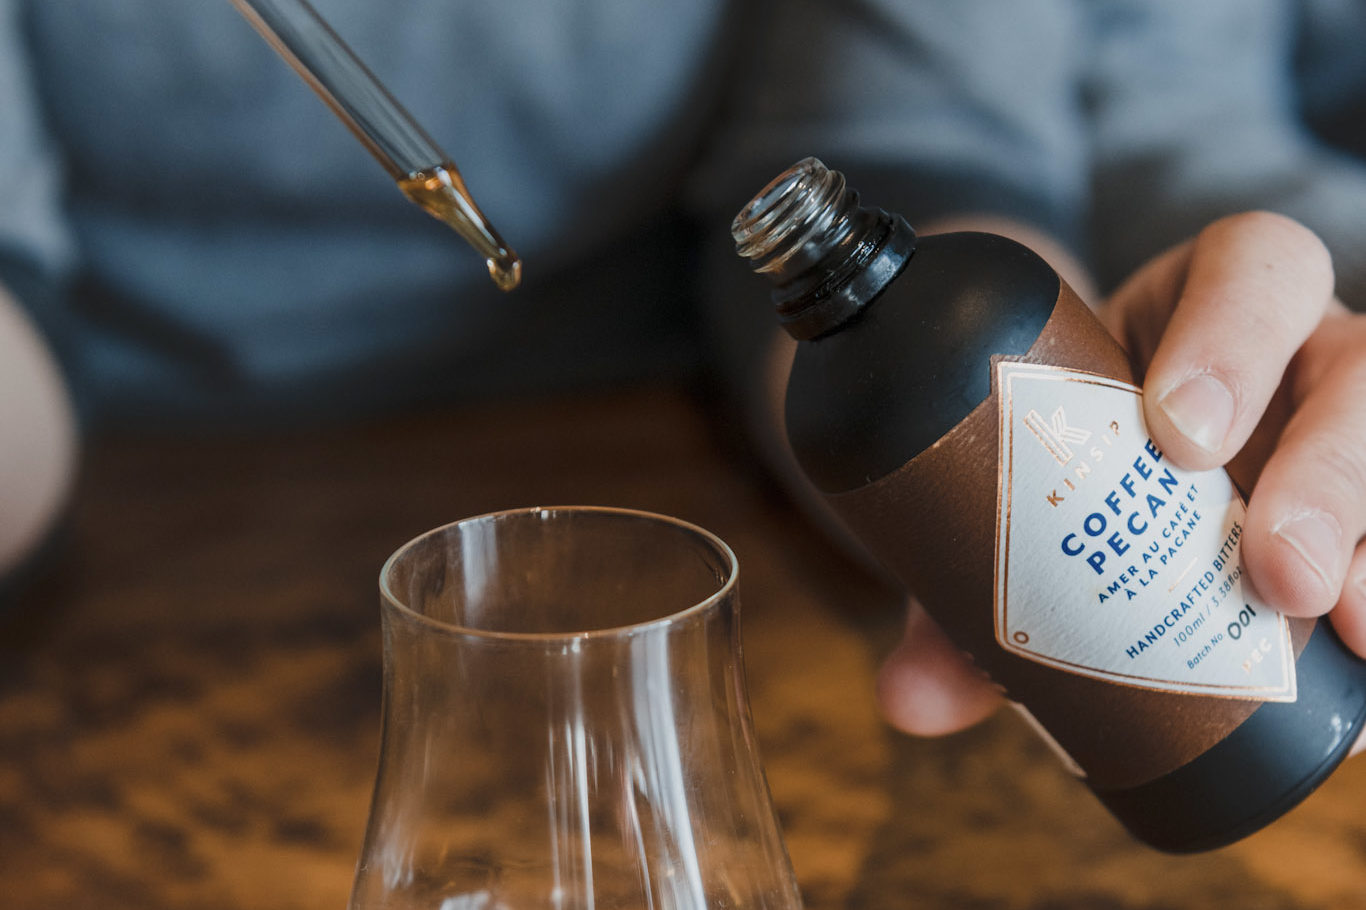 A dropper is used to put a drop of Coffee Pecan bitters from Kinsip Distillery into a glass